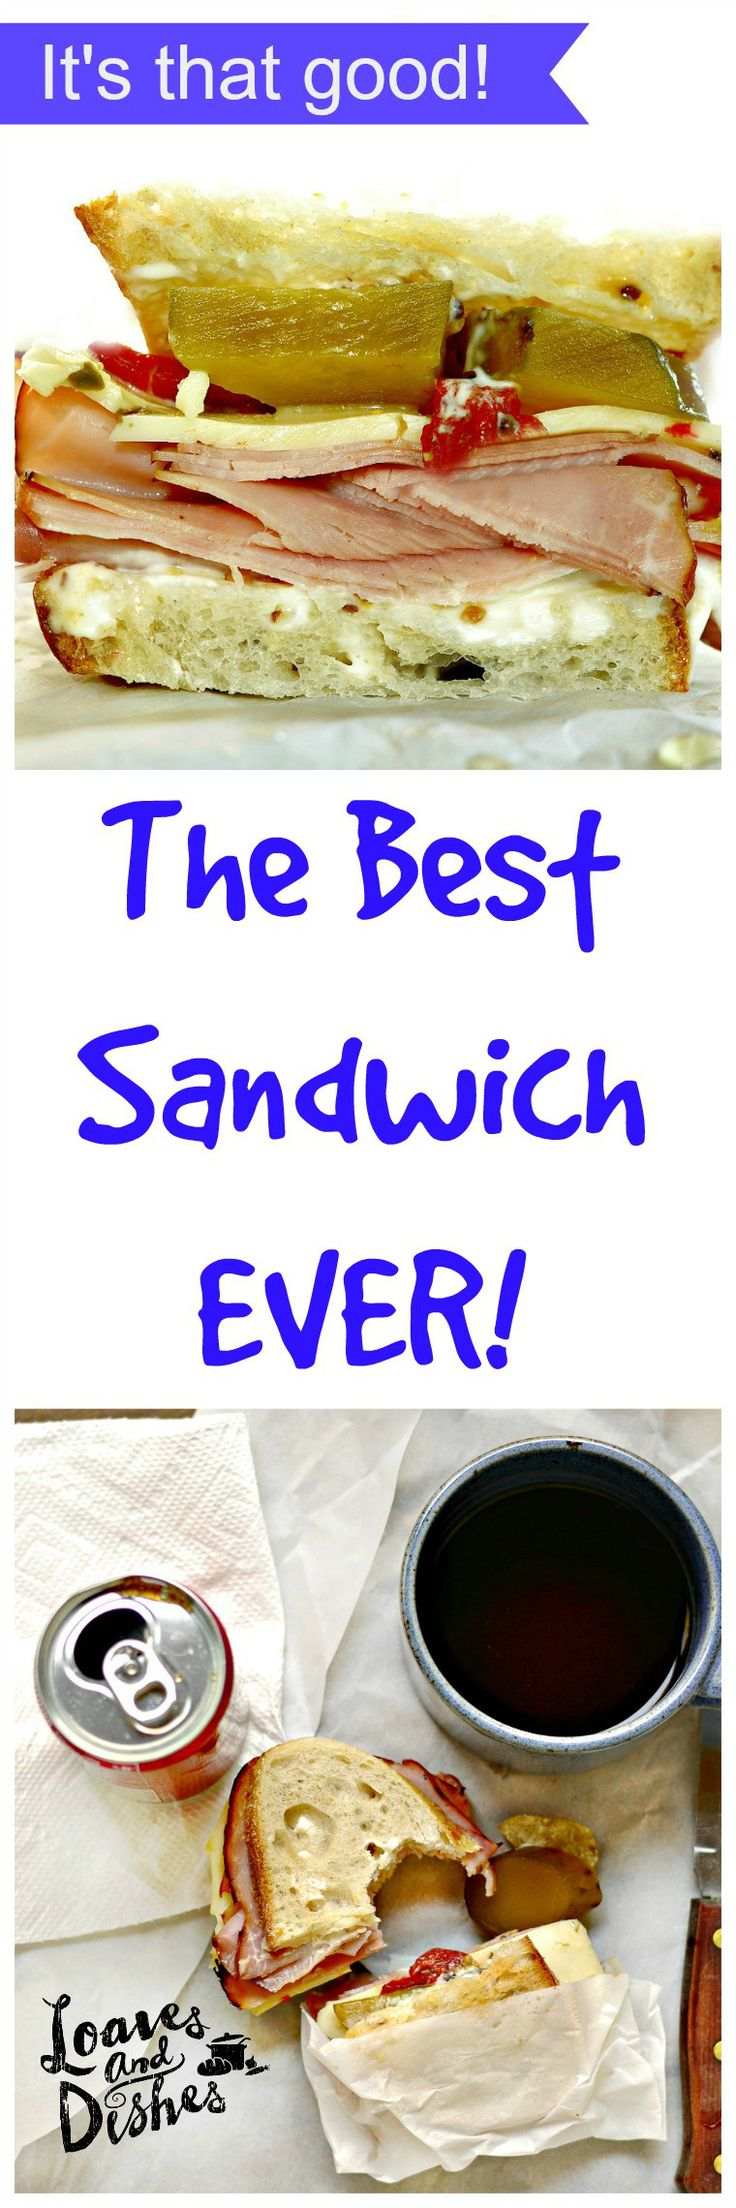 I KNOW you want a recipe for the BEST Sandwich EVER!  Complete obsession found right here www.loavesanddishes.net